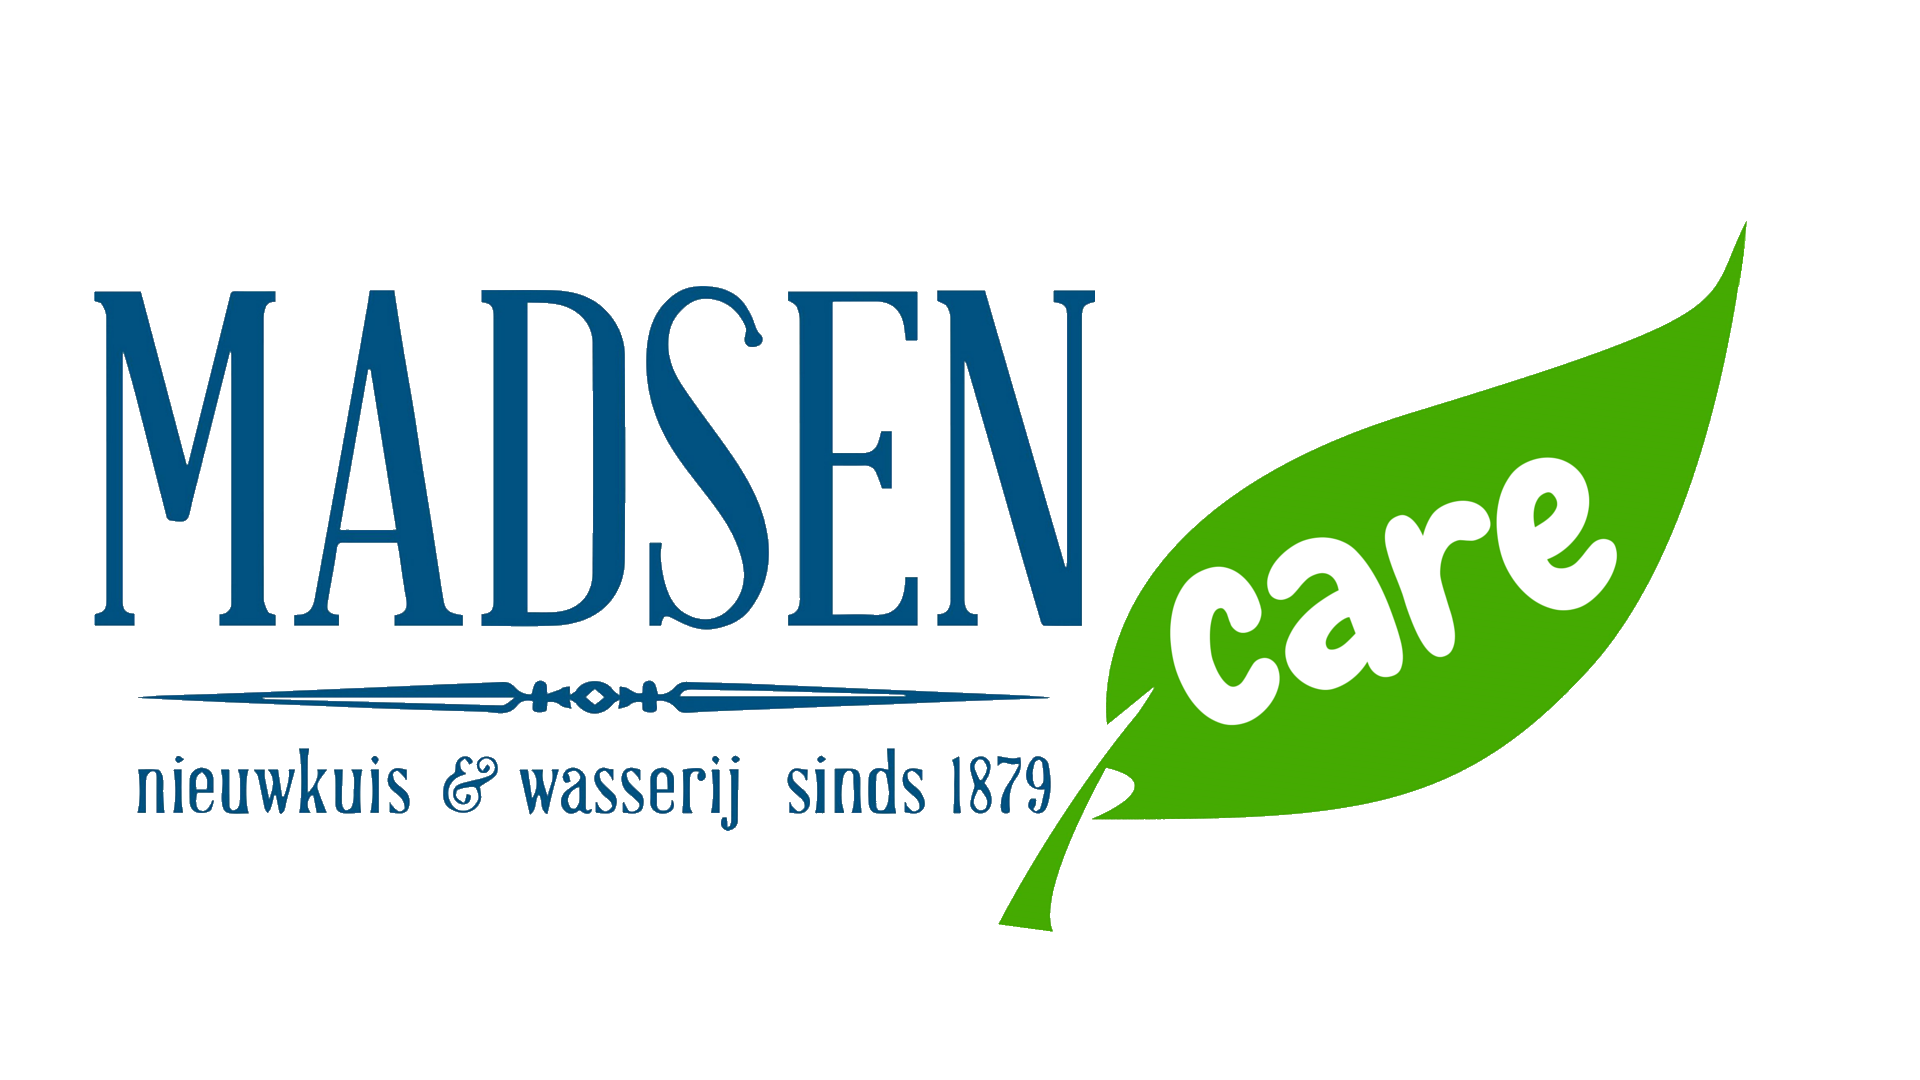 Madsen green care